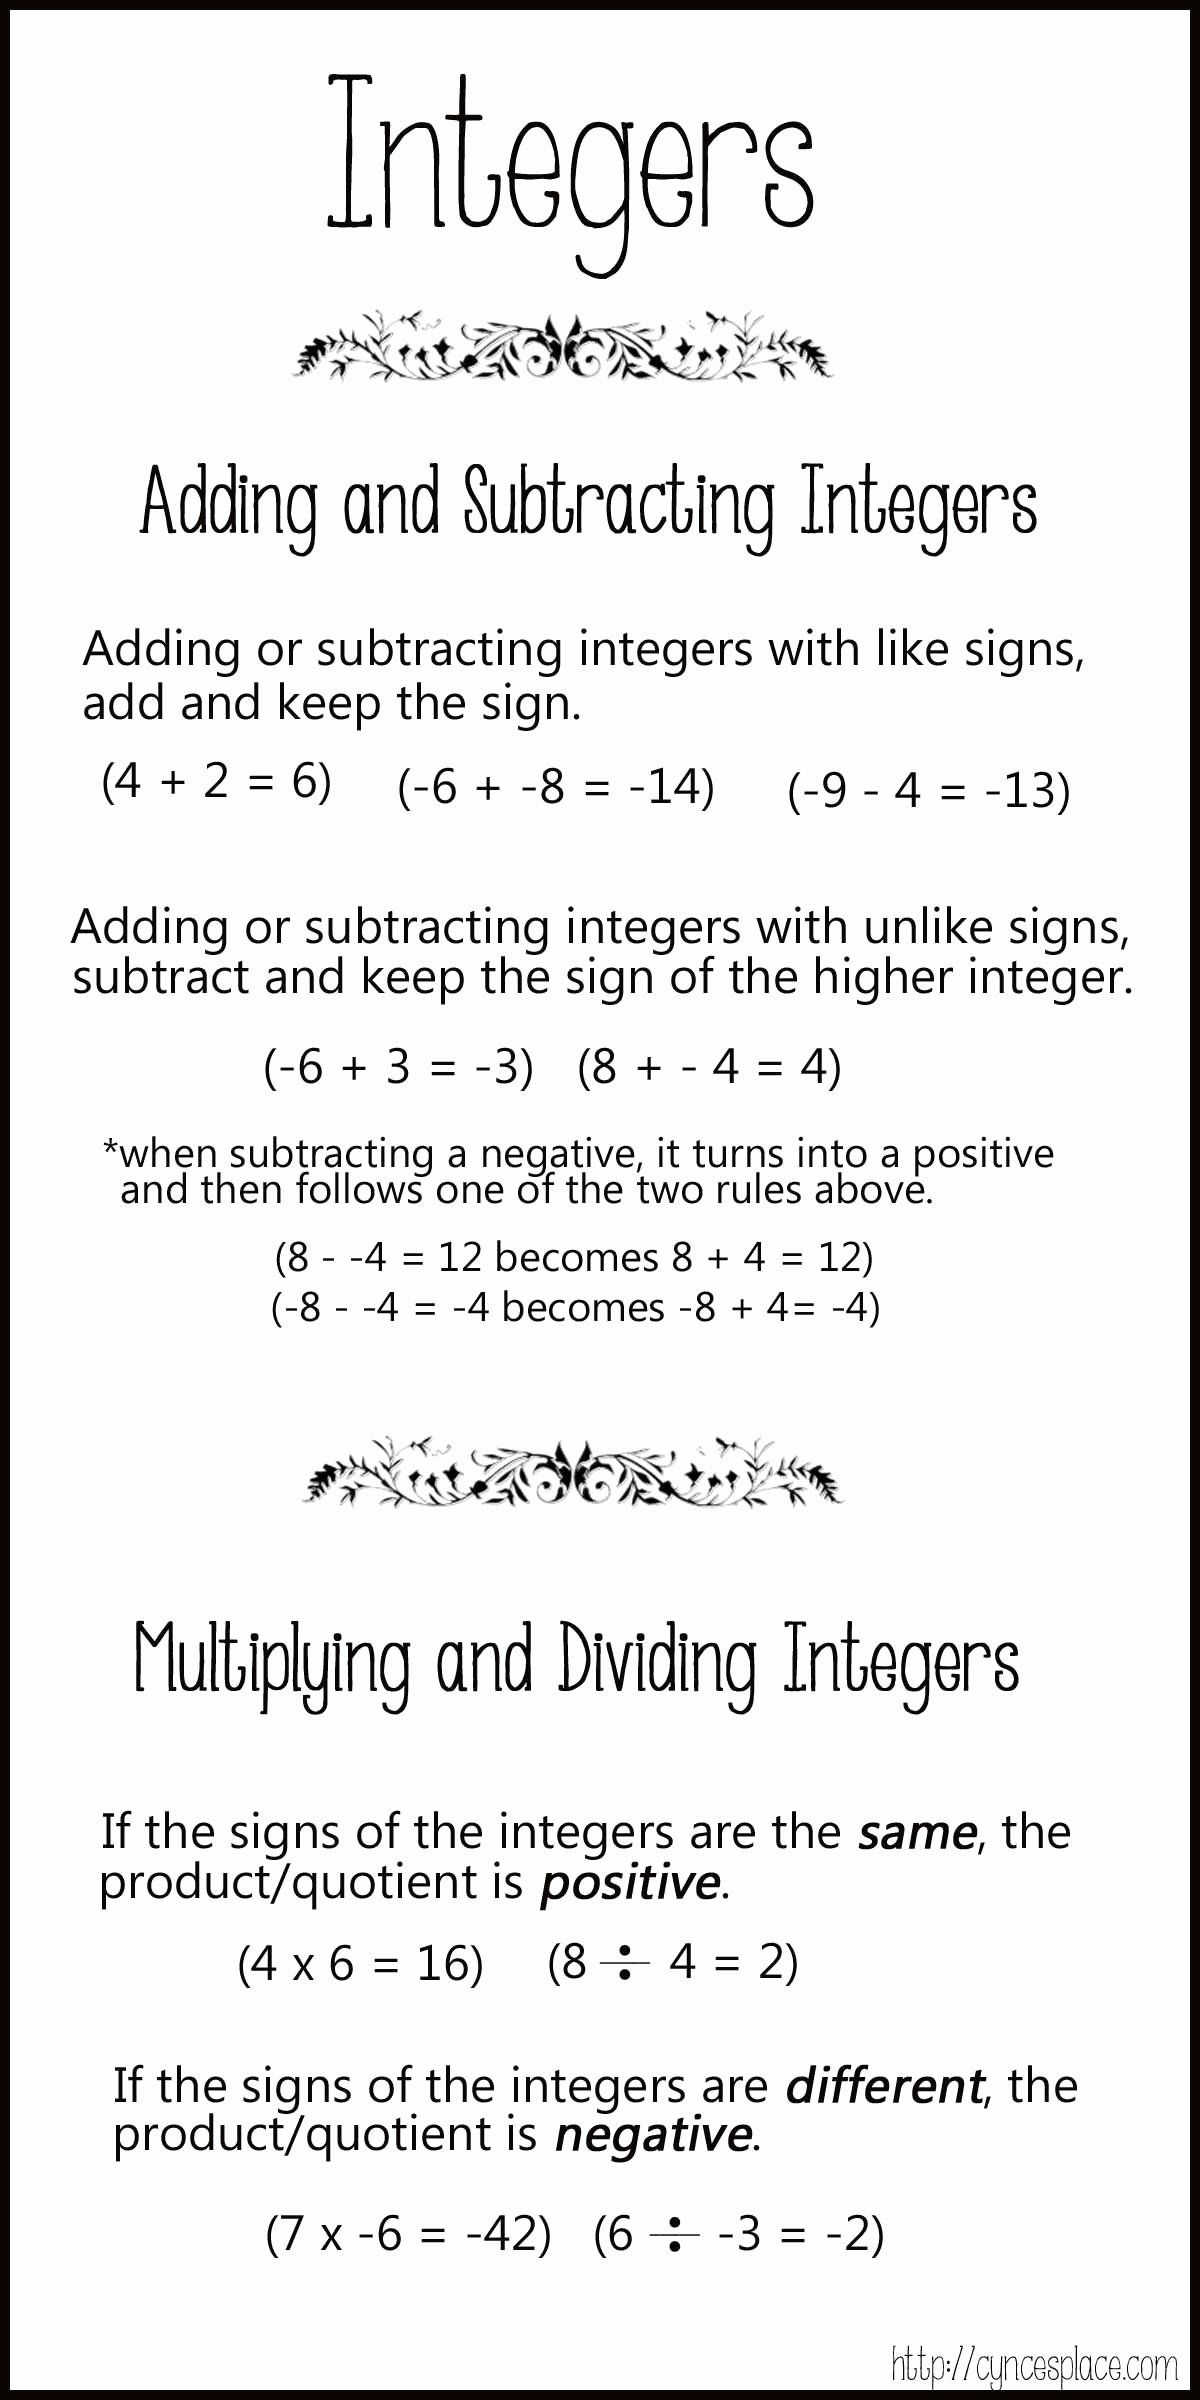 50 Multiplying And Dividing Integers Worksheet In